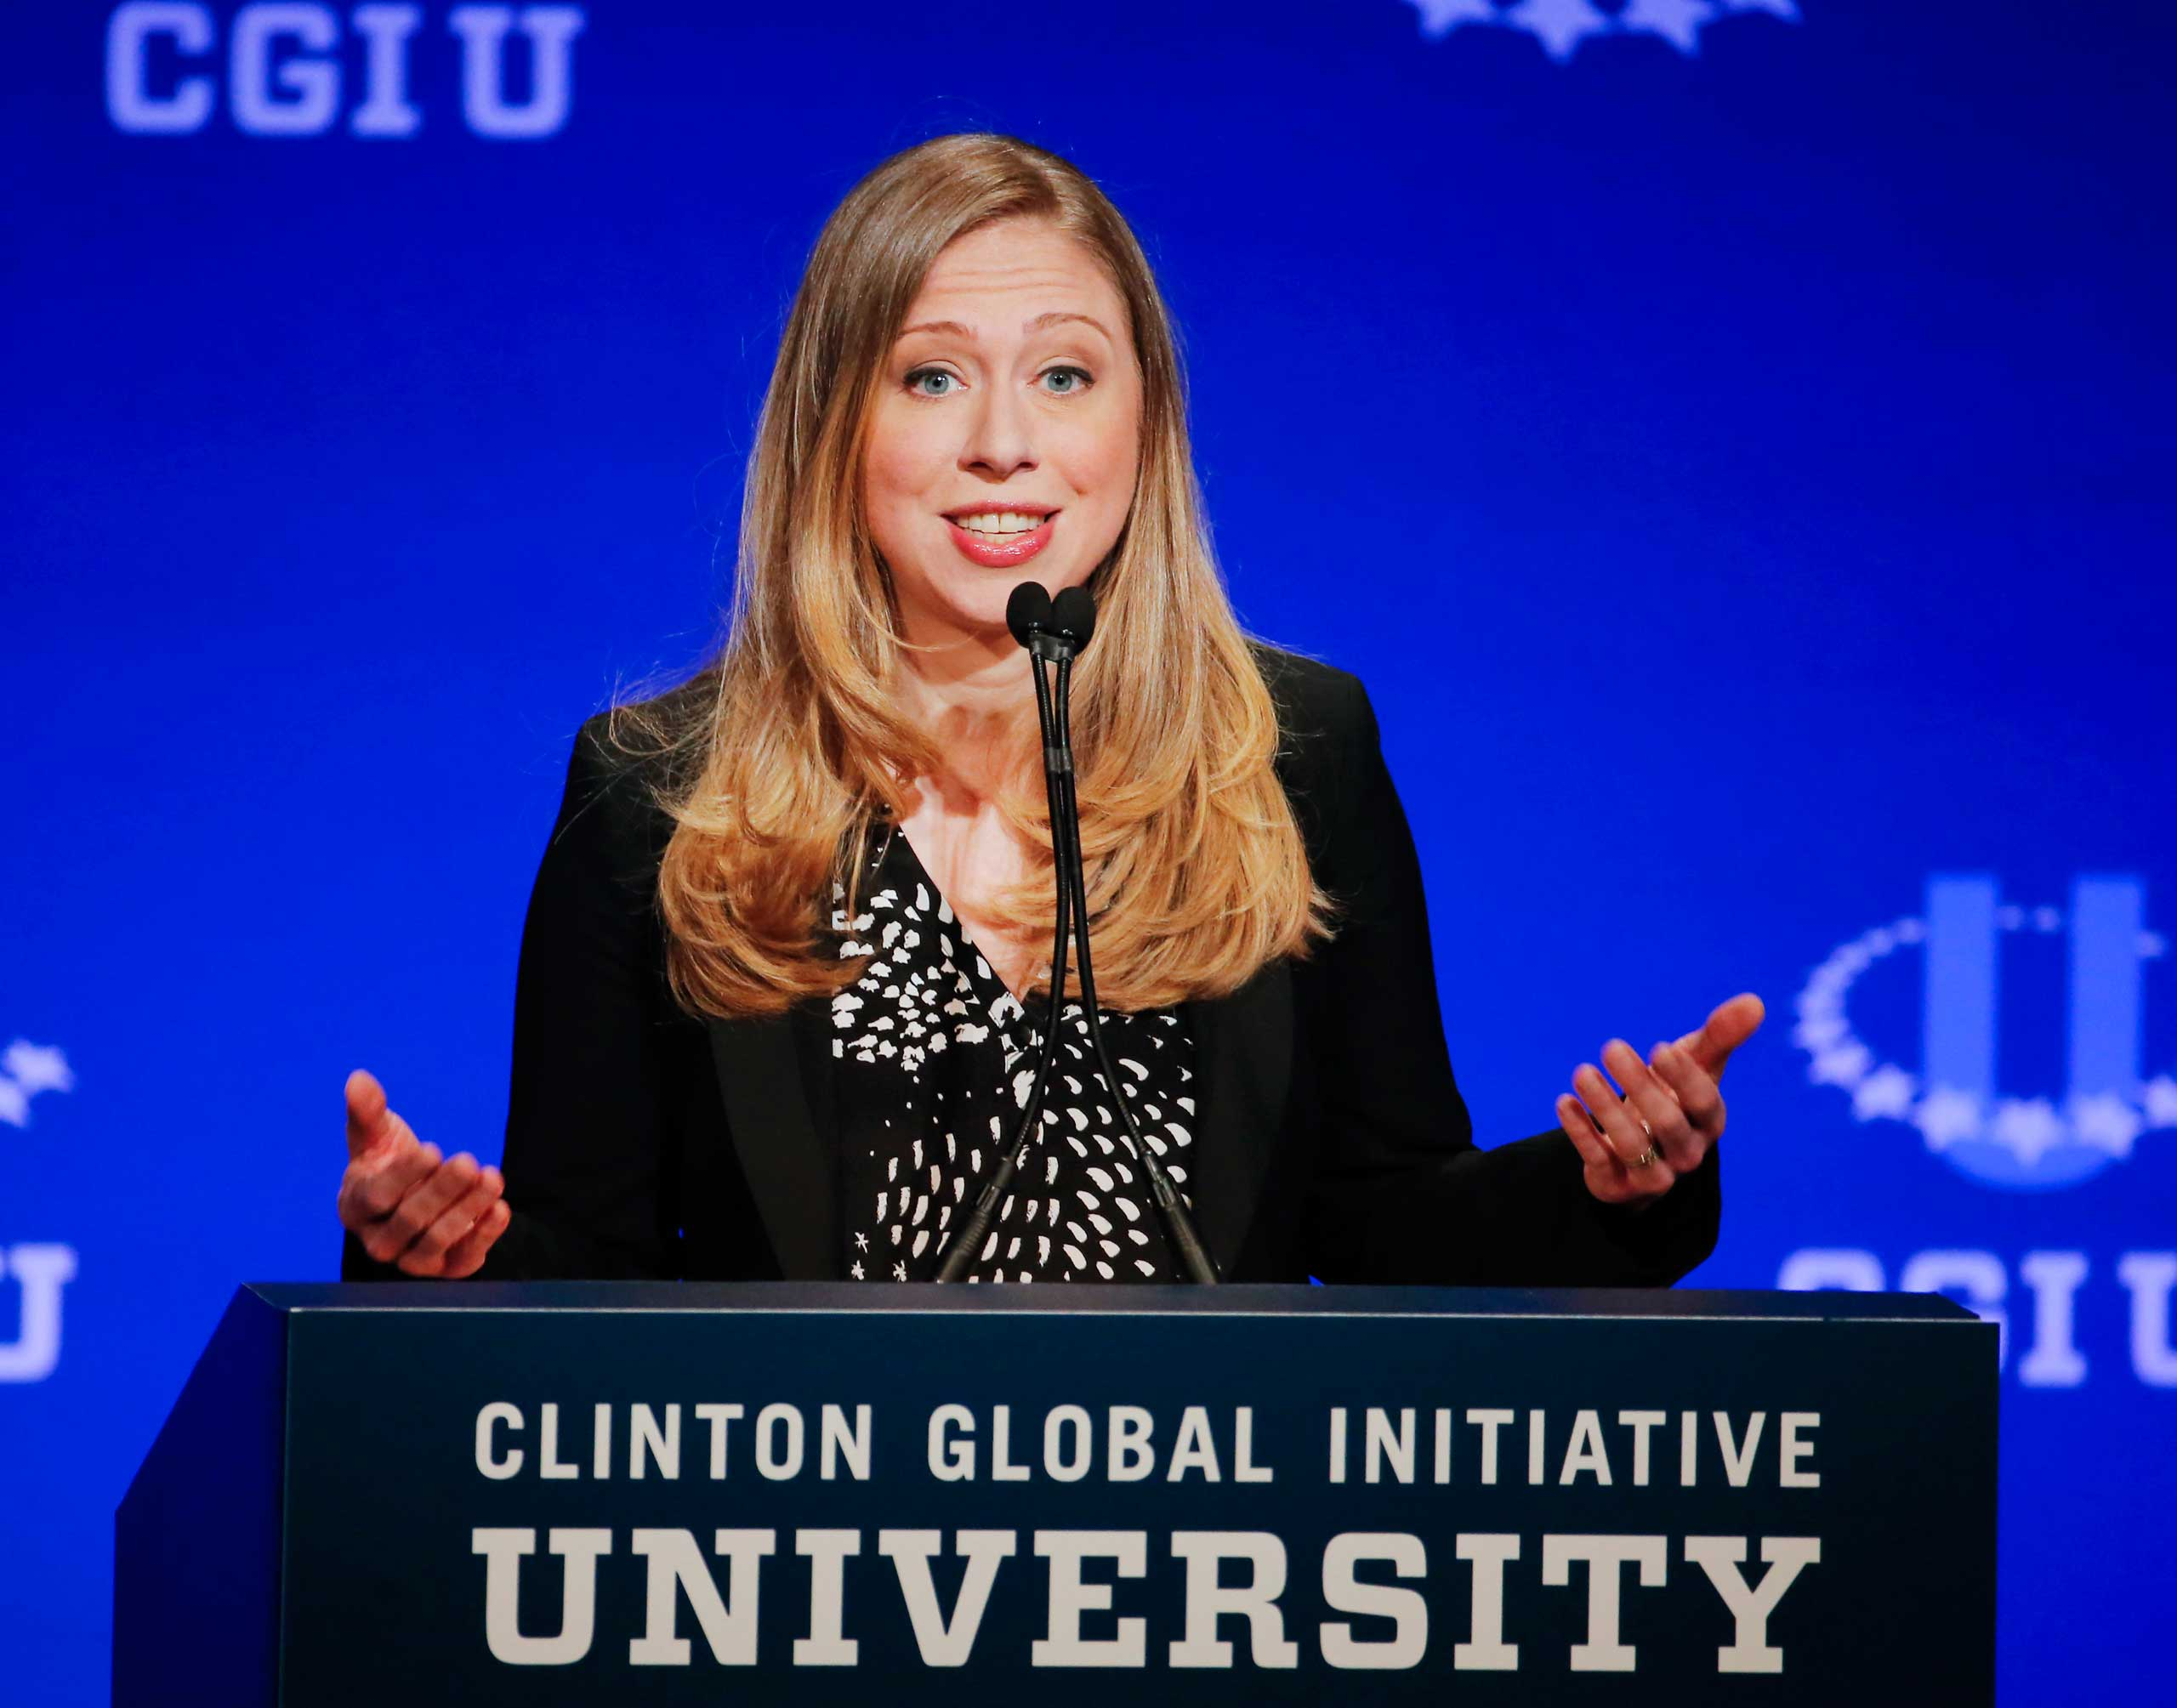 Vice Chair of the Clinton Foundation Chelsea Clinton speaks during a student conference for the Clinton Global Initiative University, at Arizona State University in Tempe, Ariz. on March 22, 2014.